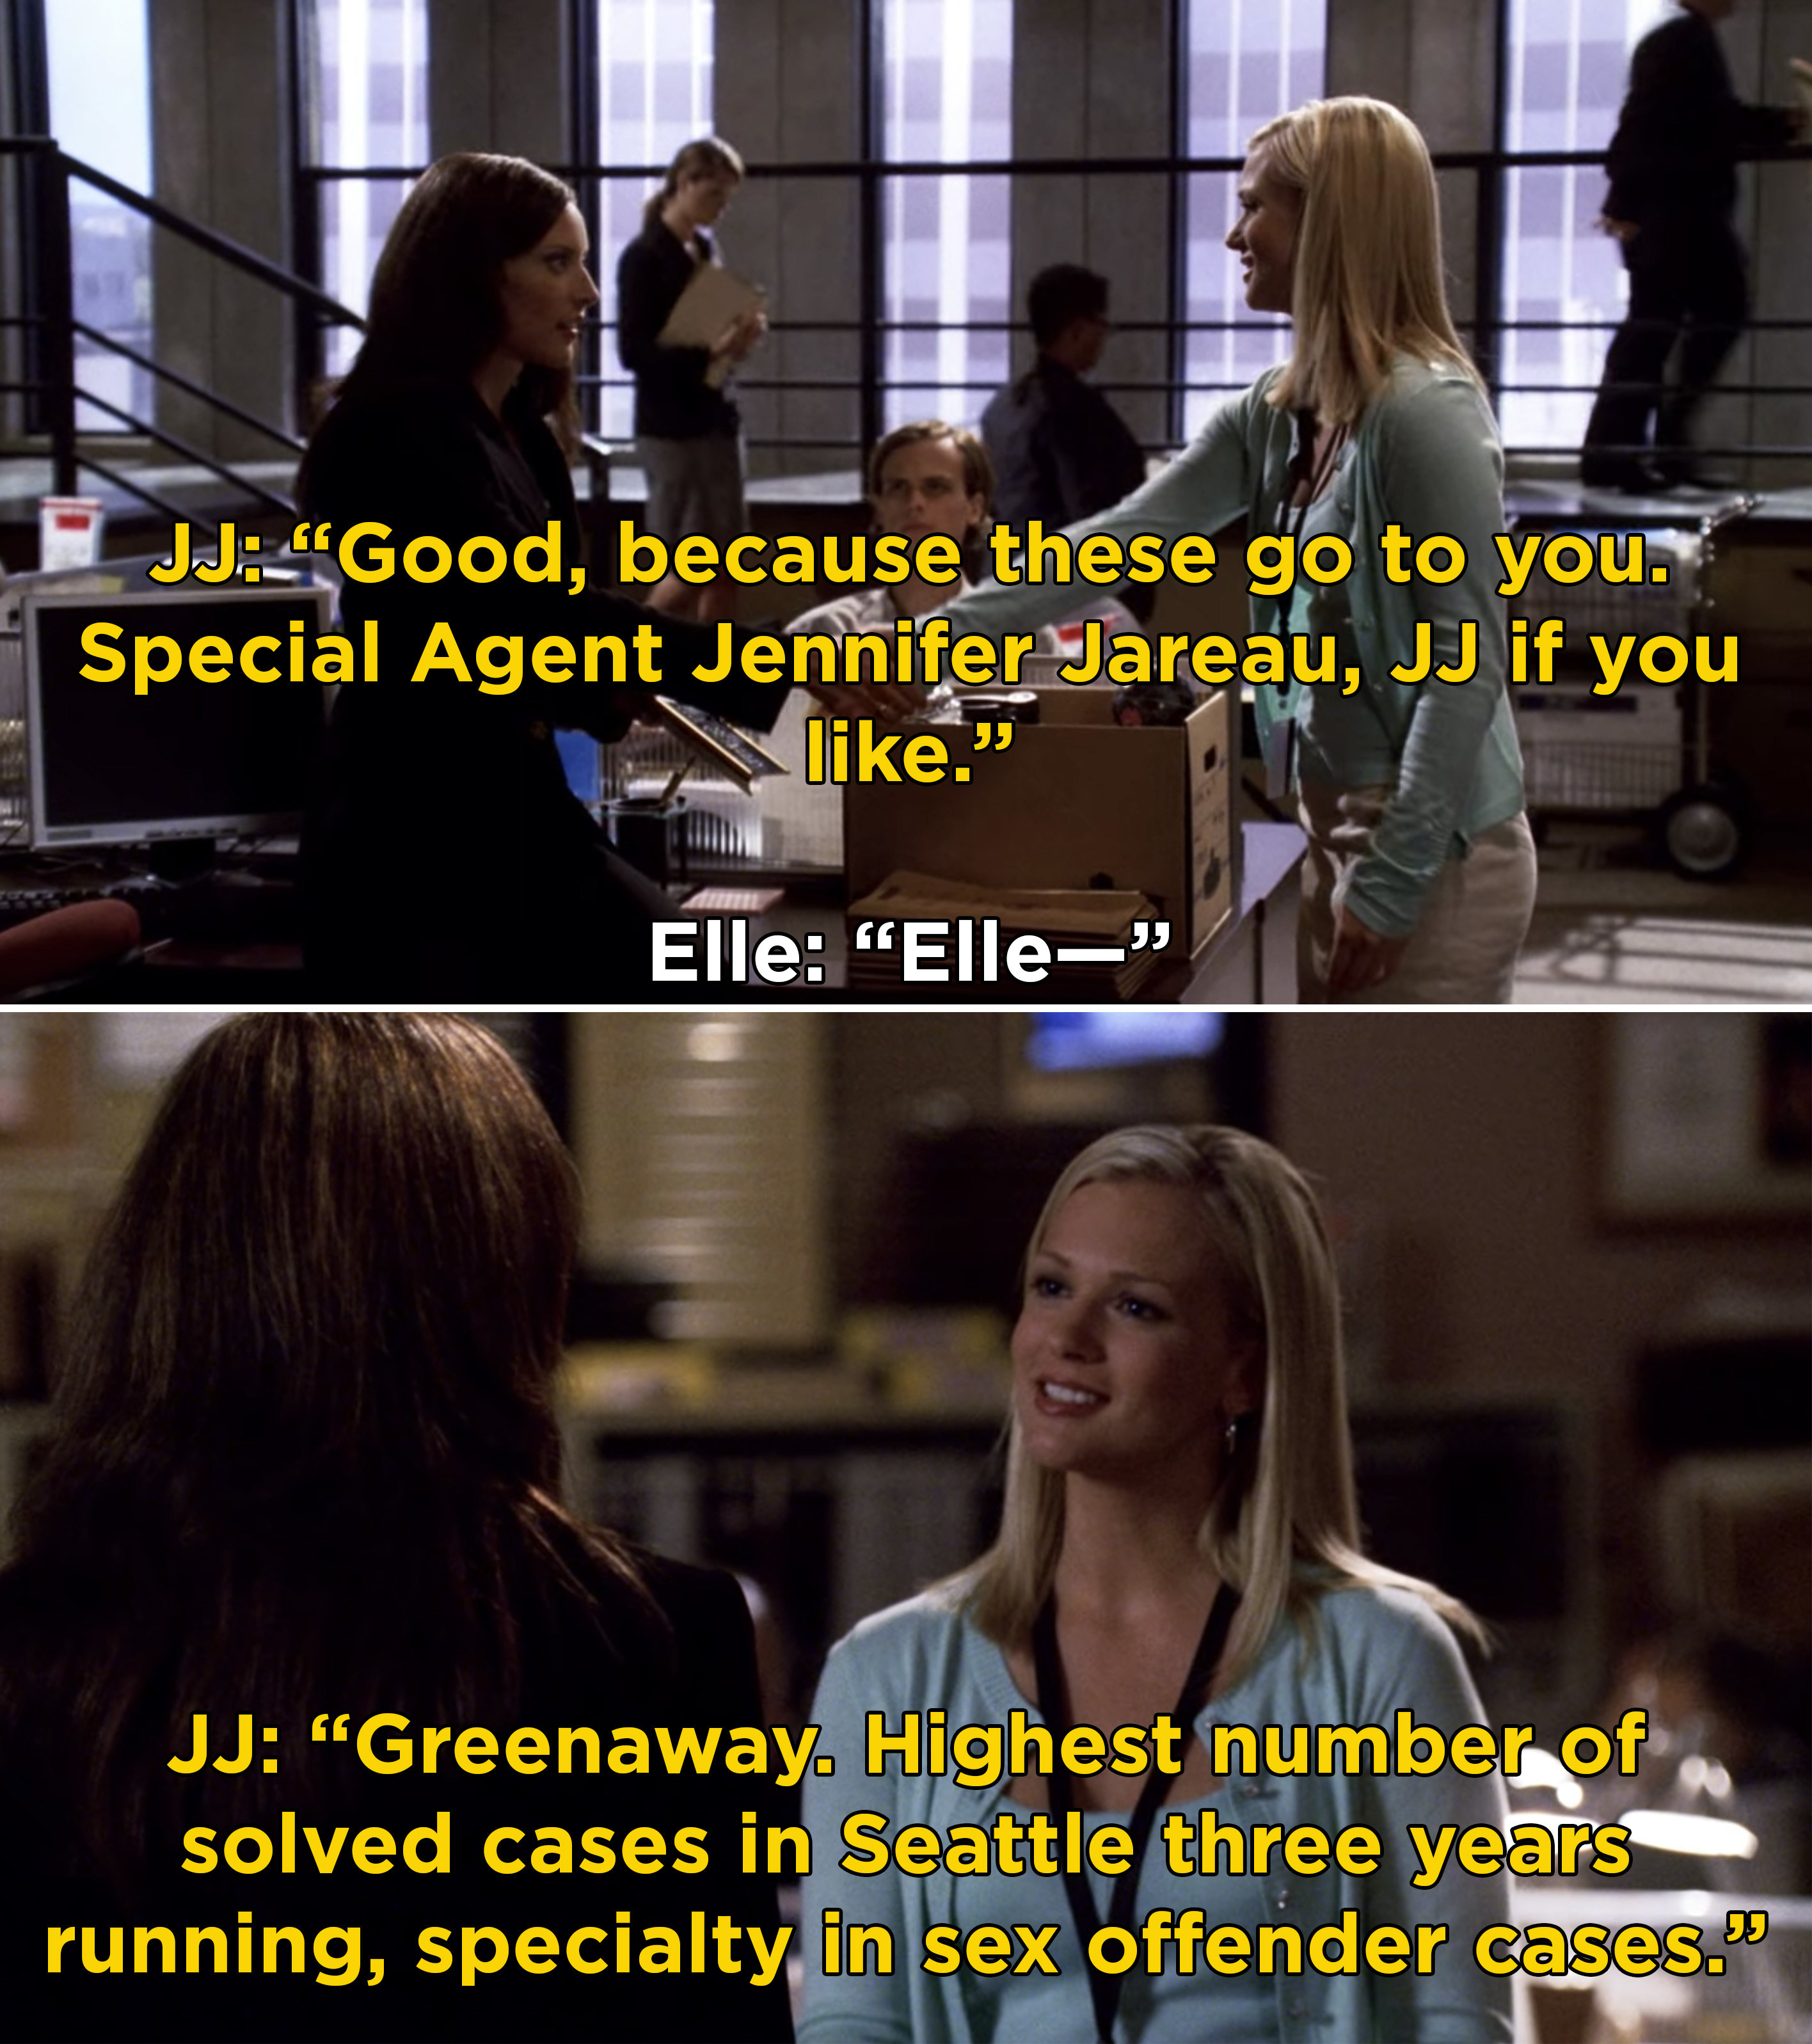 JJ introducing herself to Elle